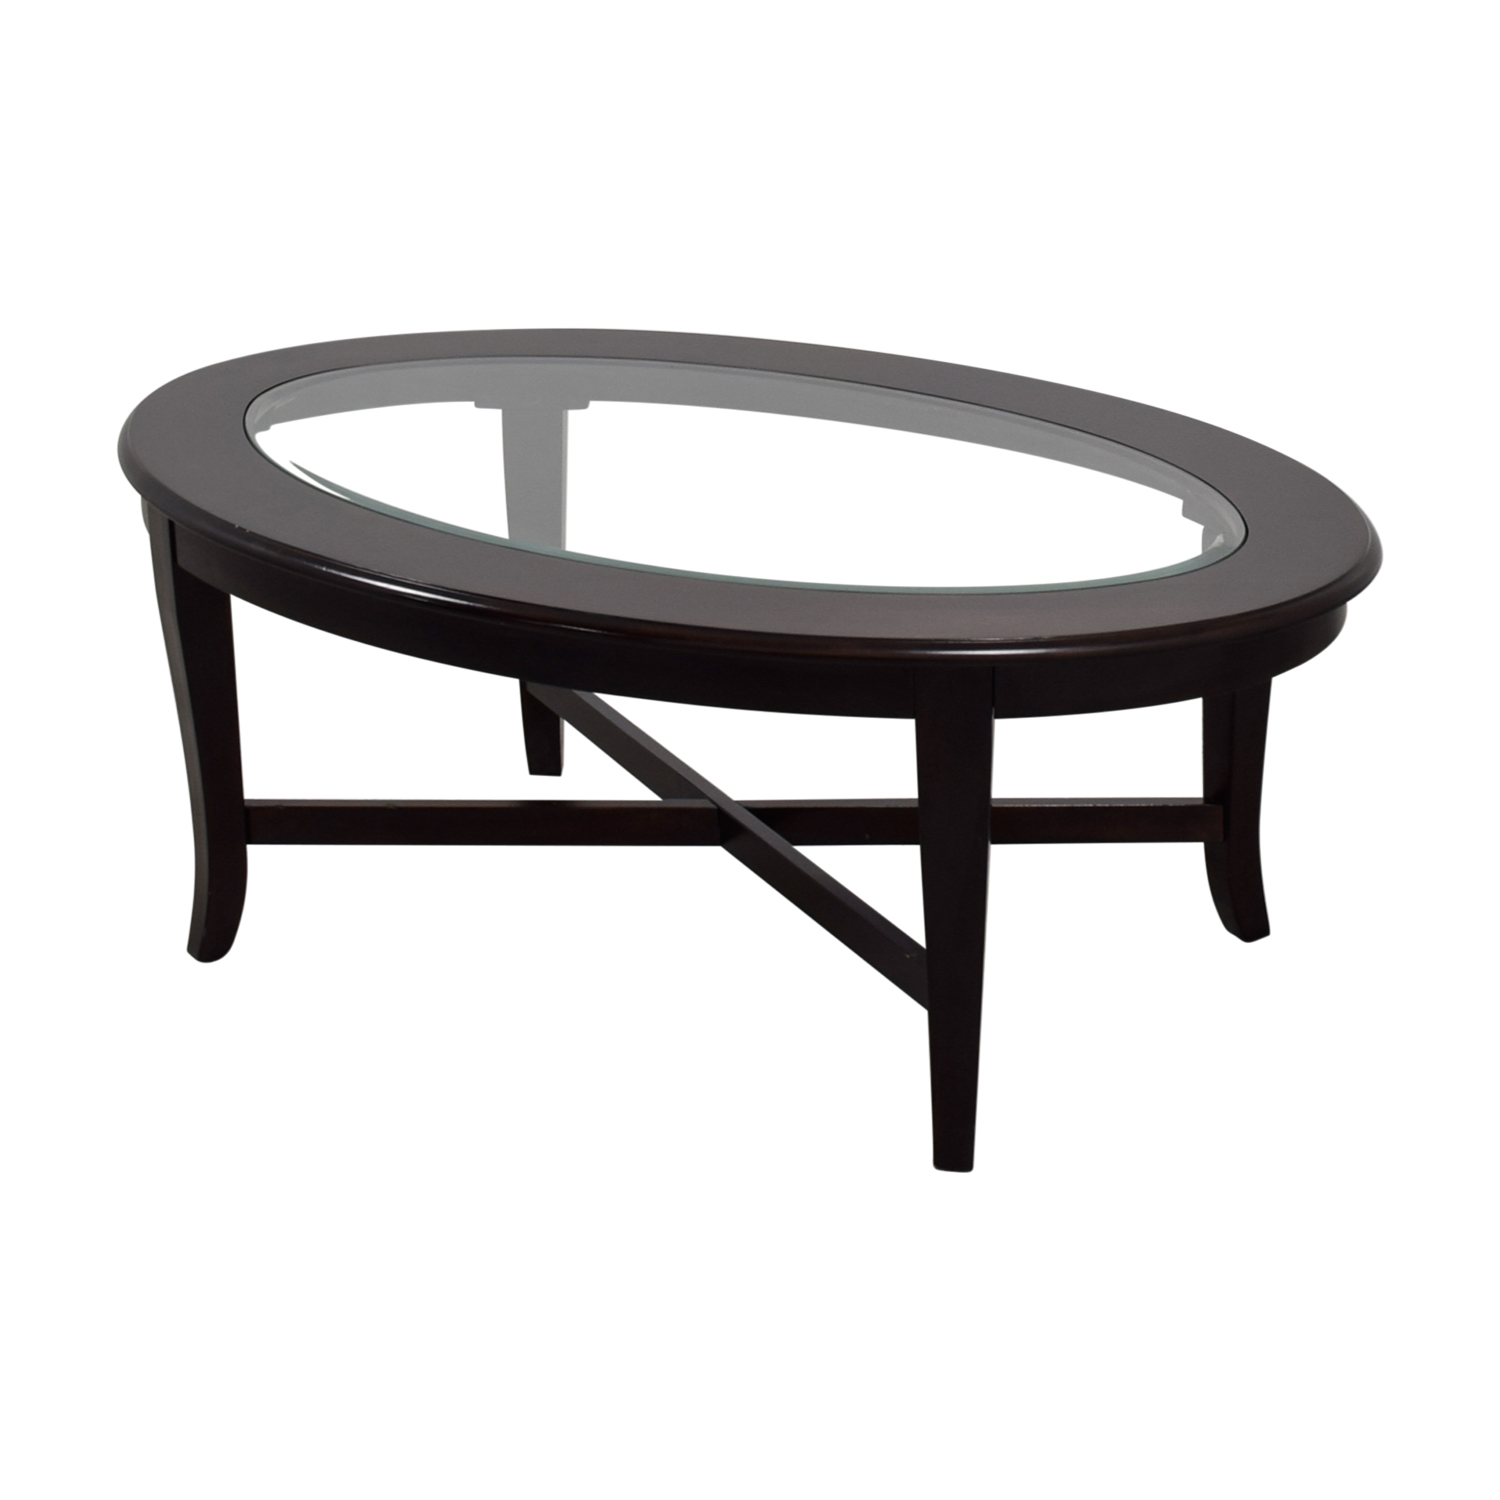 Bobs Furniture Oval Glass Coffee Table Bobs Furniture